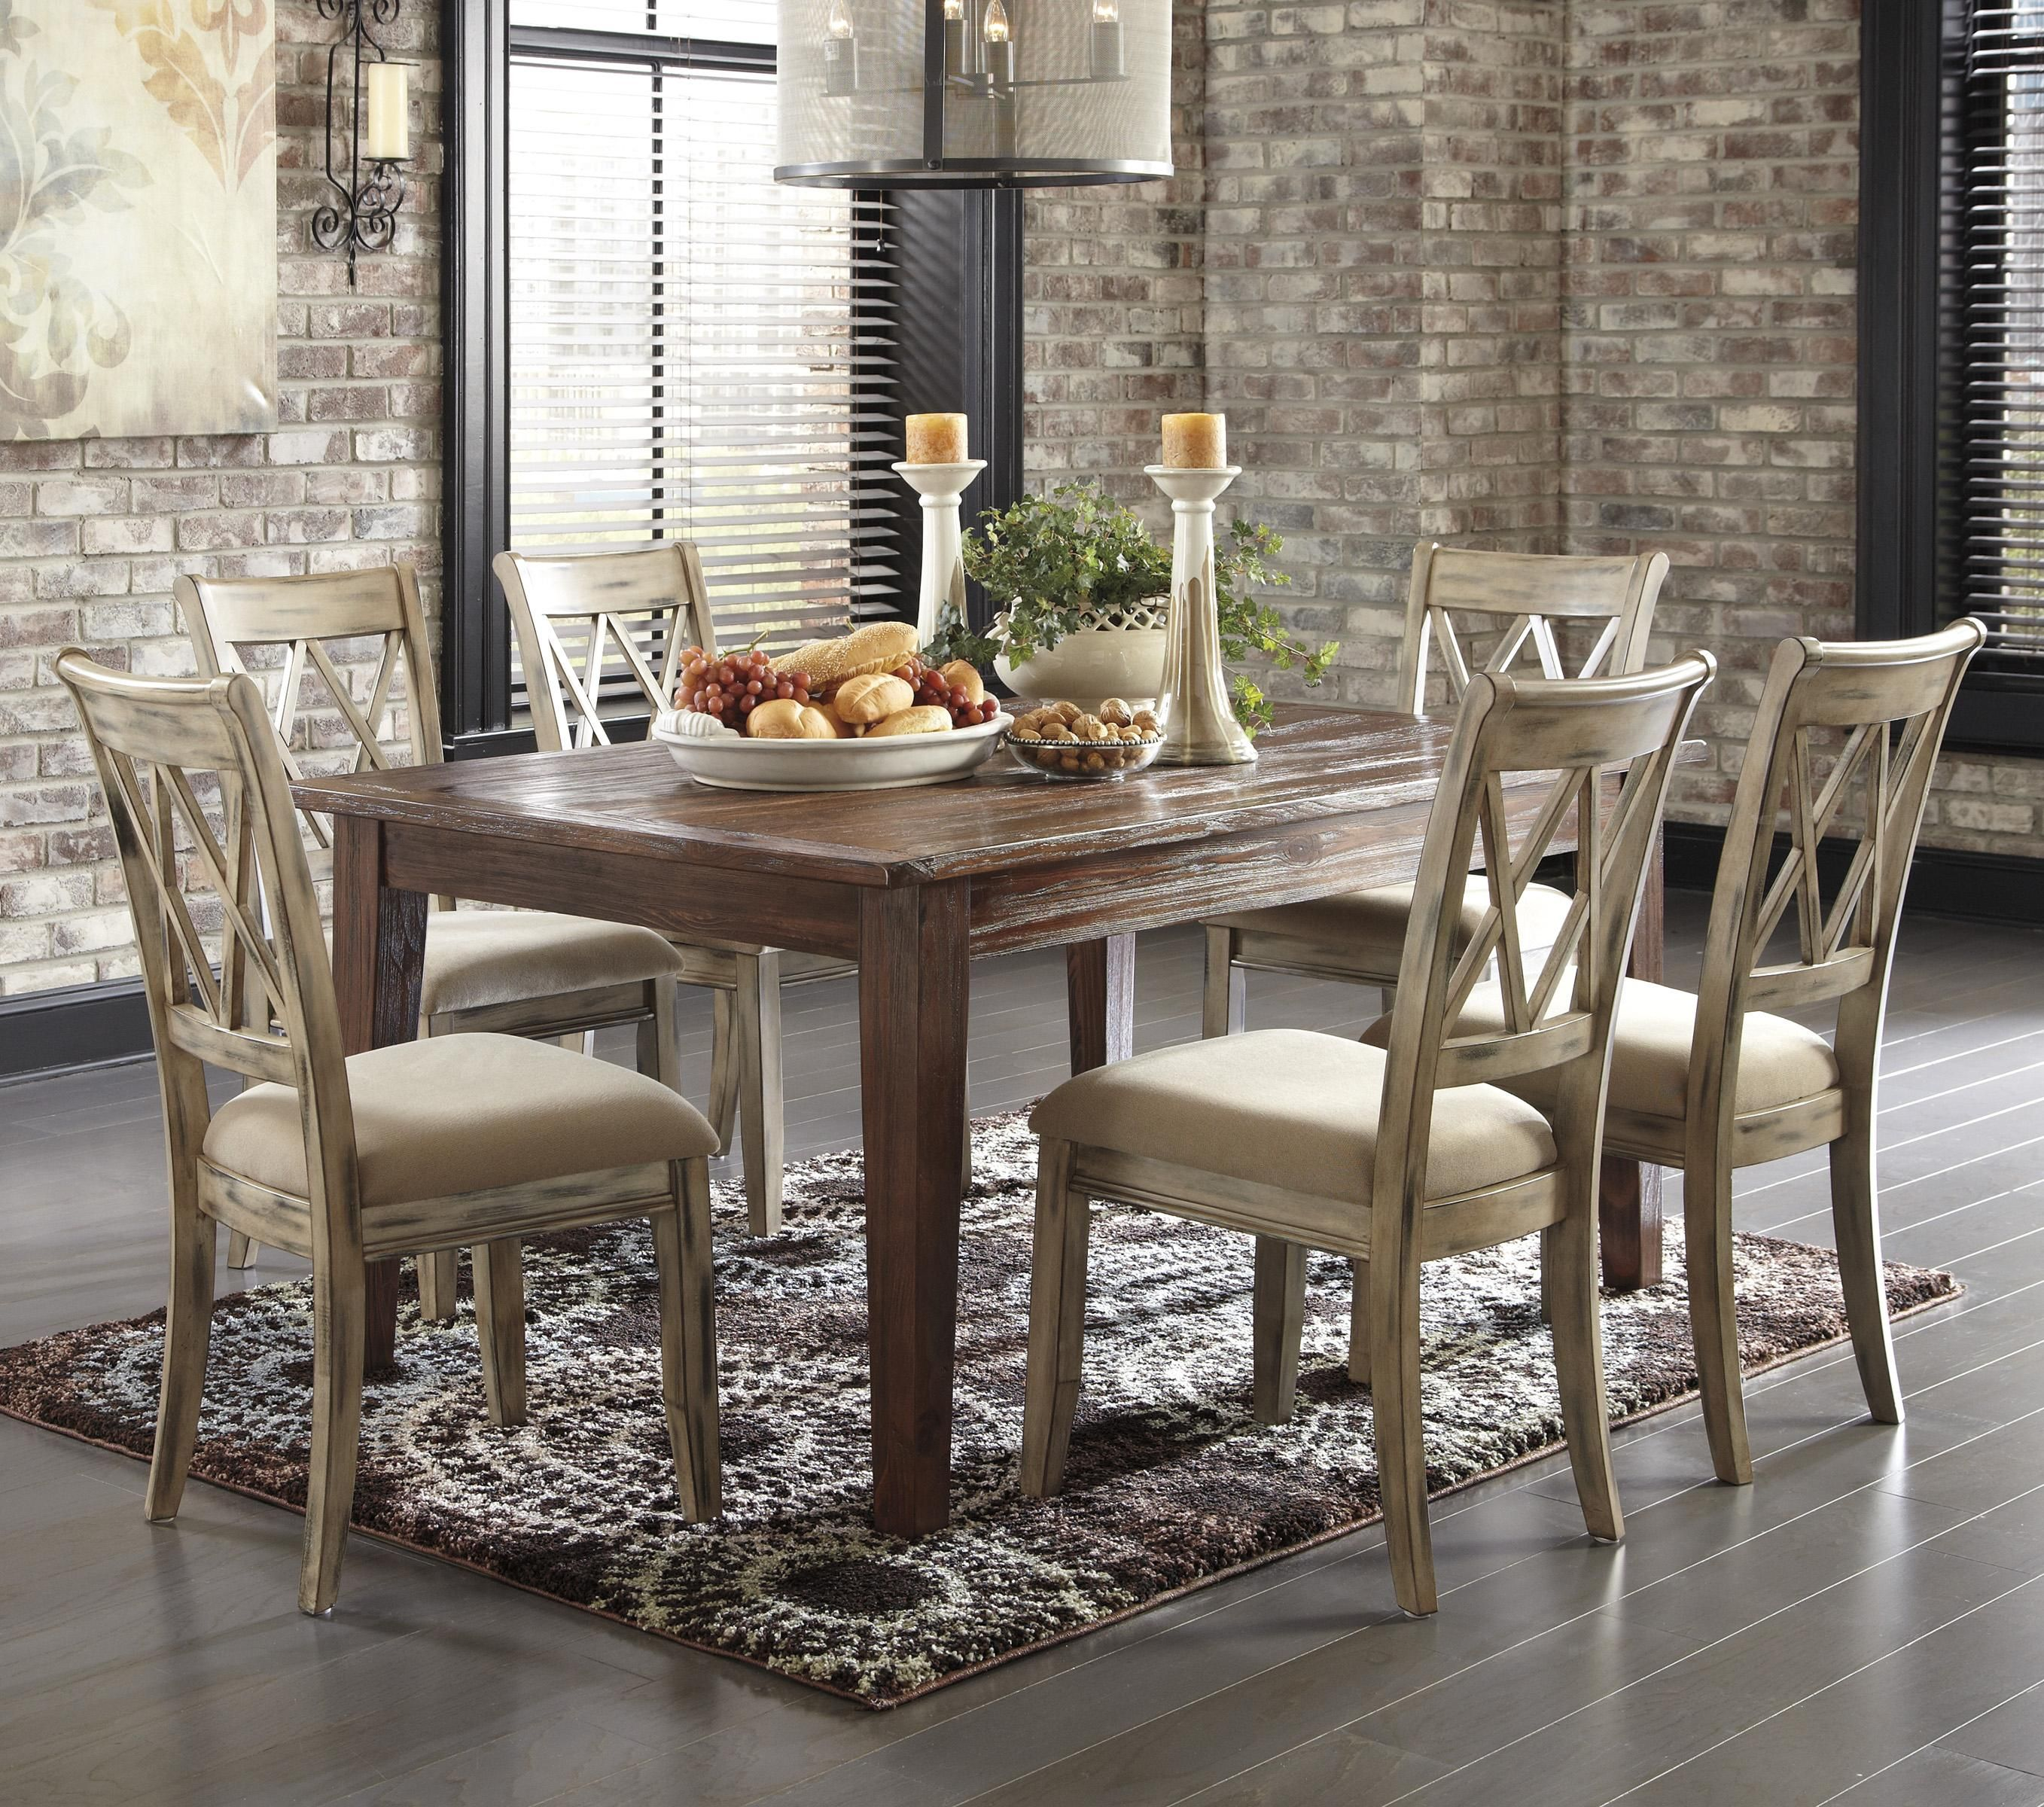 Home Rustic Dining TablesDining Room Home